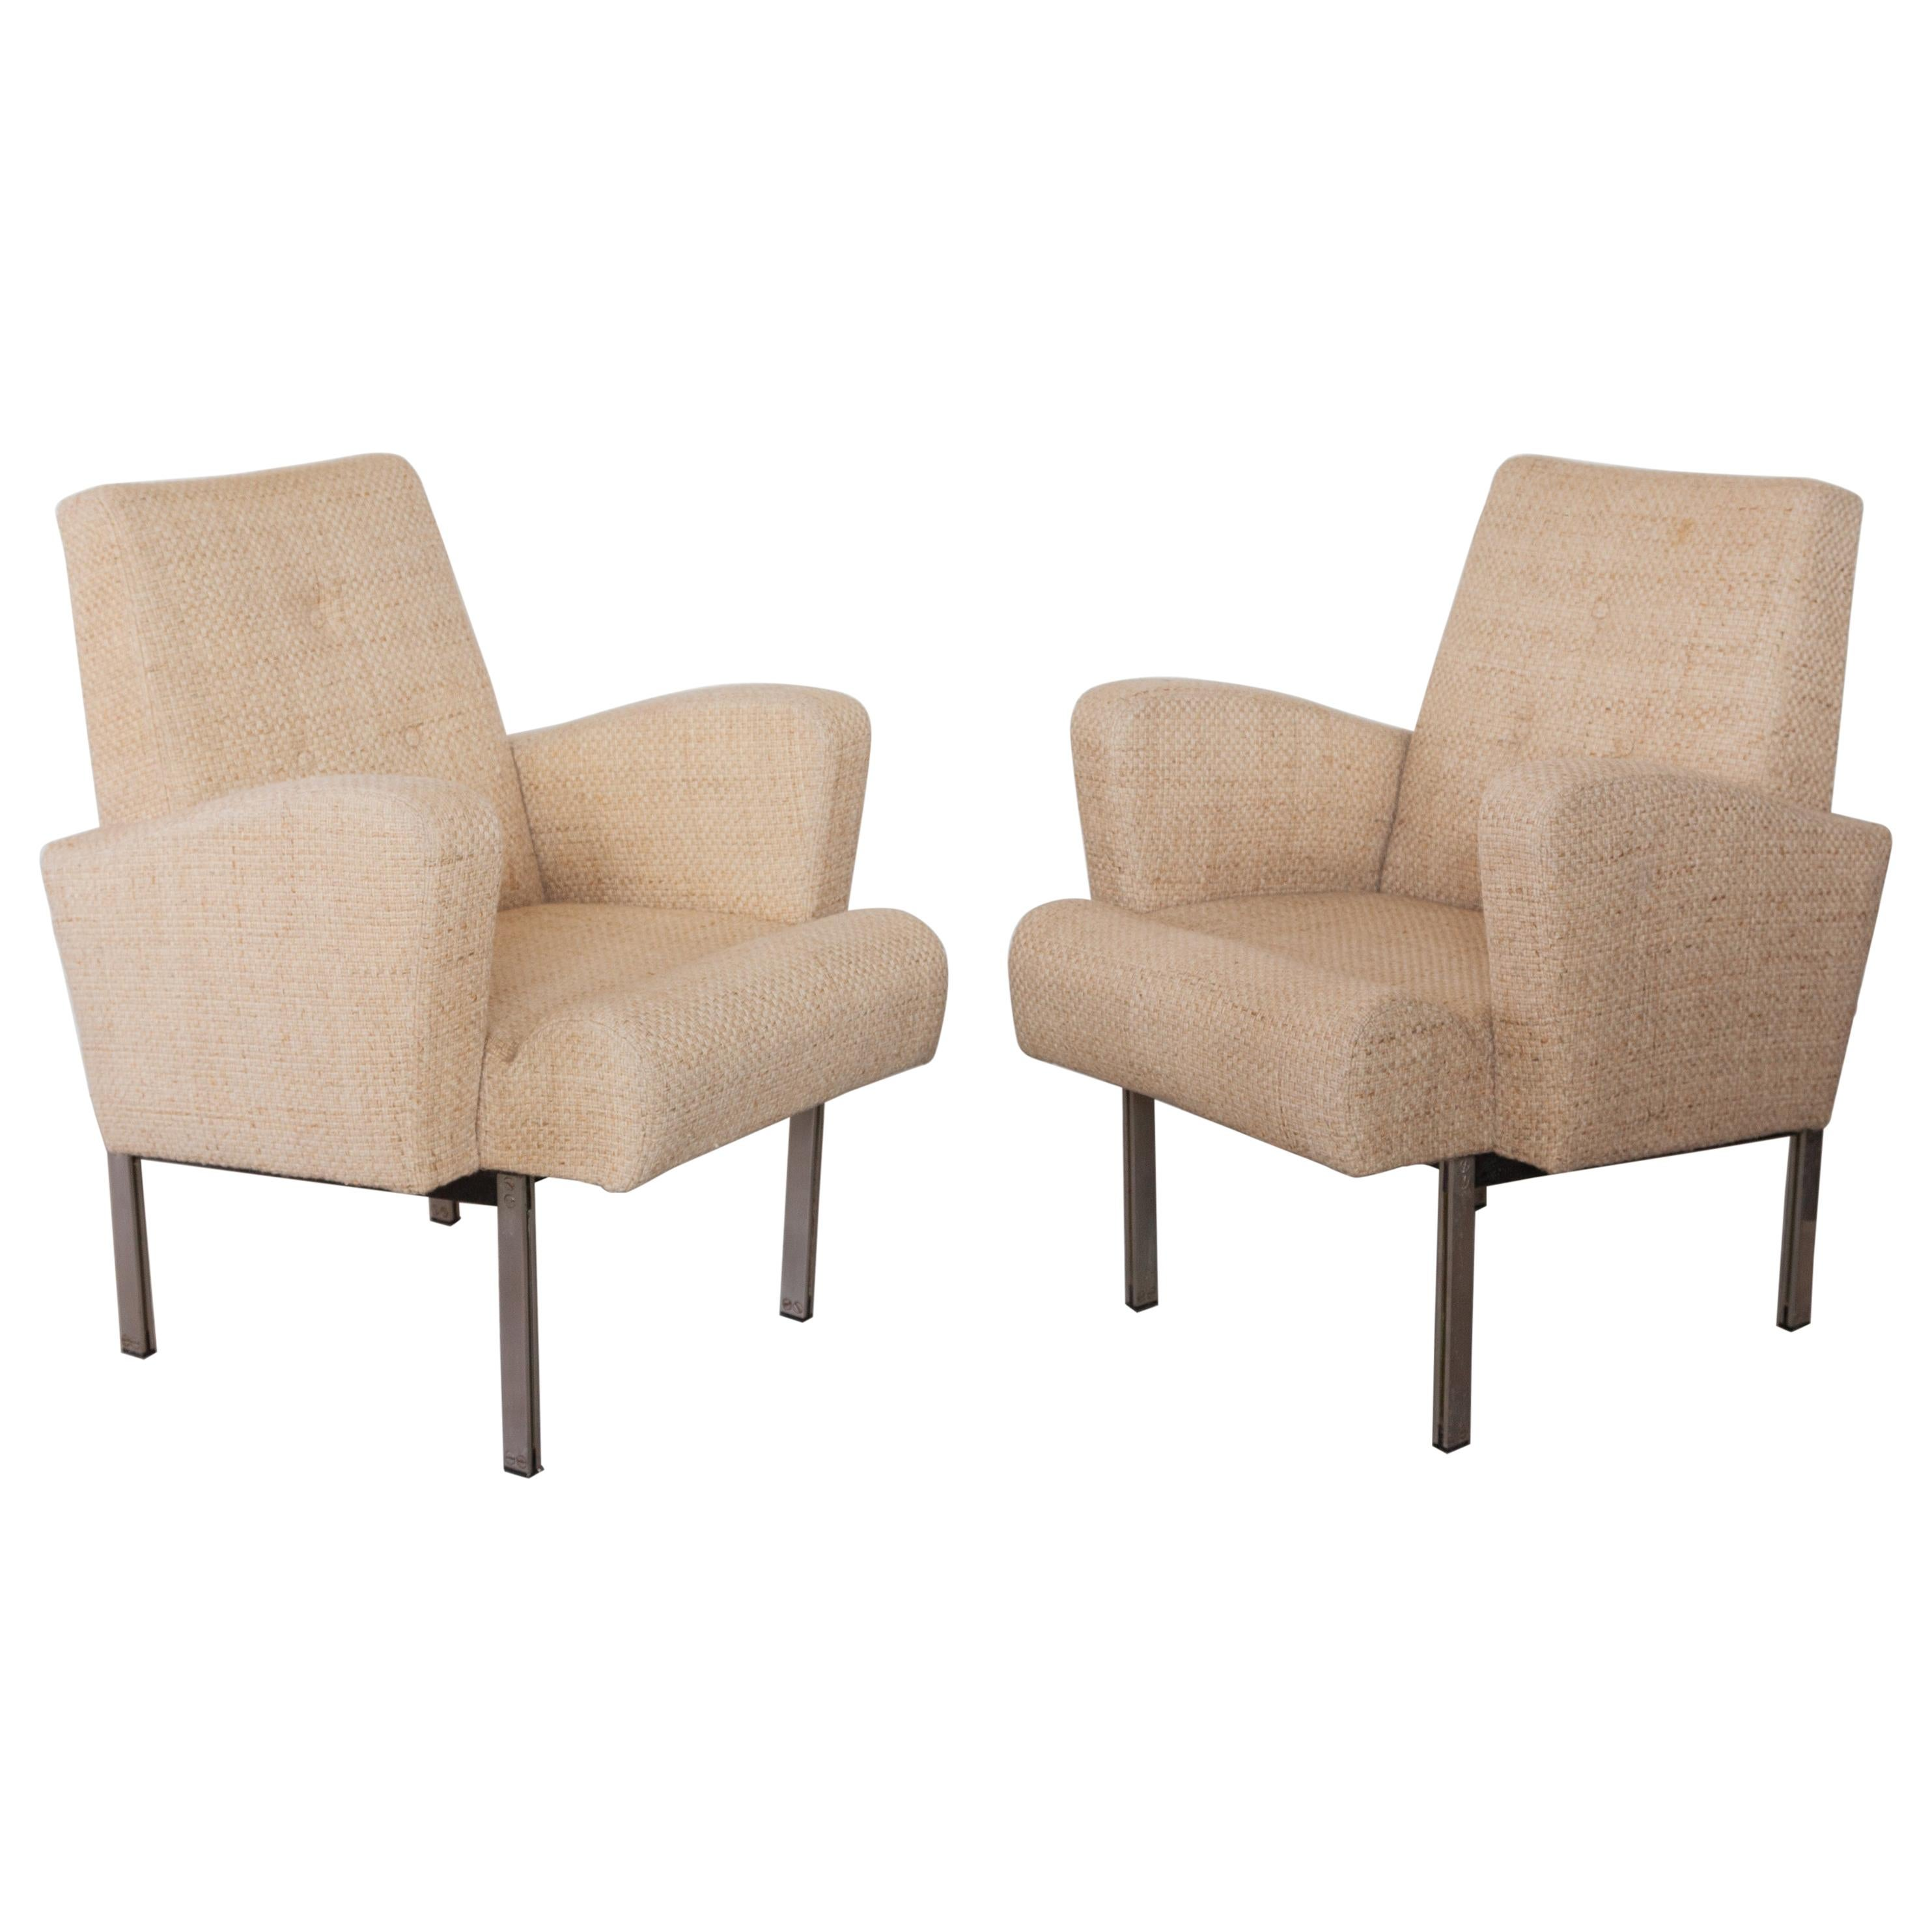 Pair of Lounge Chairs in Style of Milo Baughman for Thayer Coggin